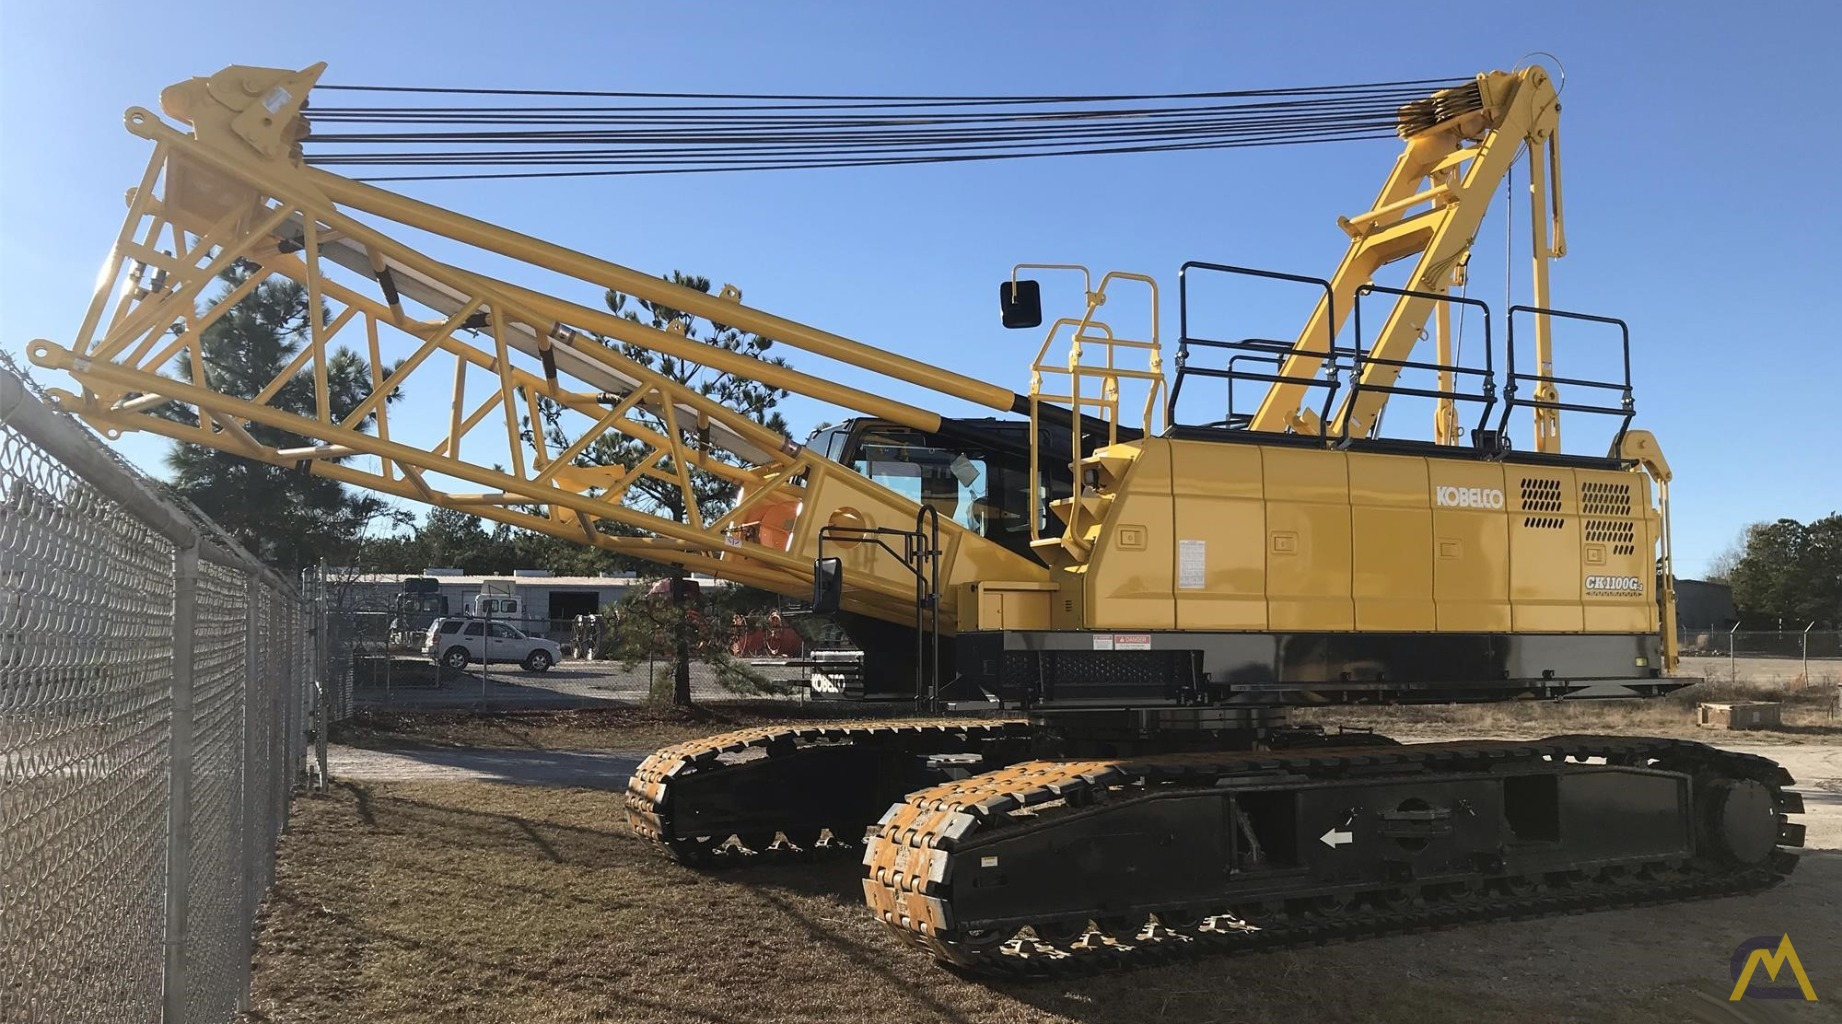 Kobelco CK1100G 110-Ton Lattice Boom Crawler Crane  1